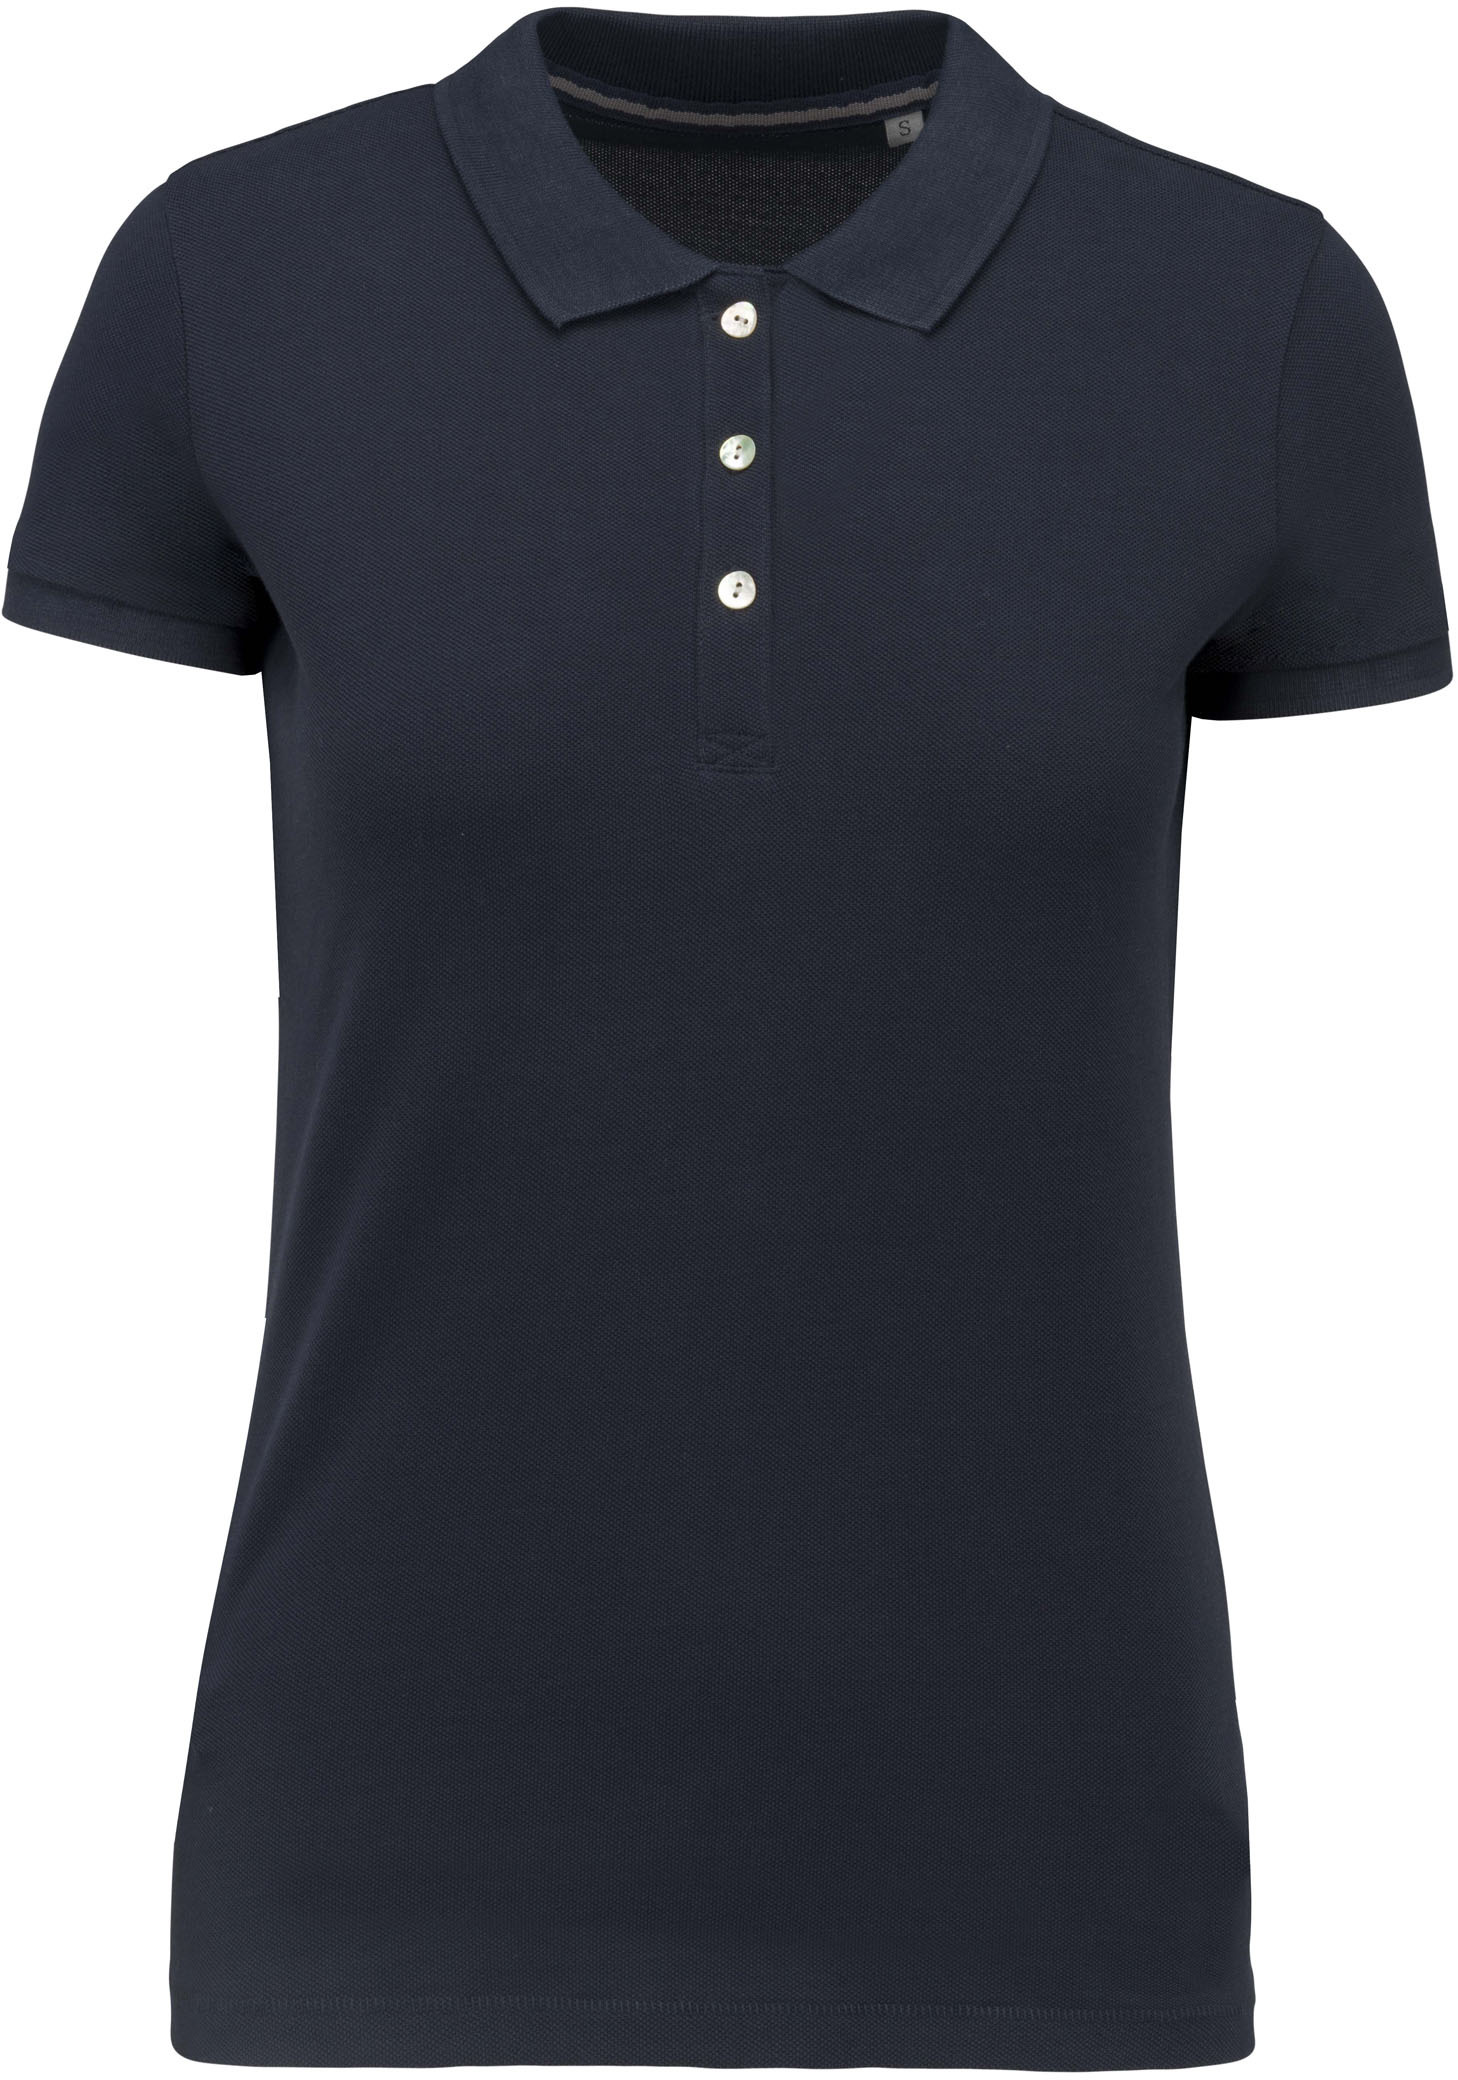 Polo Supima® manches courtes femme - 2-1540-2